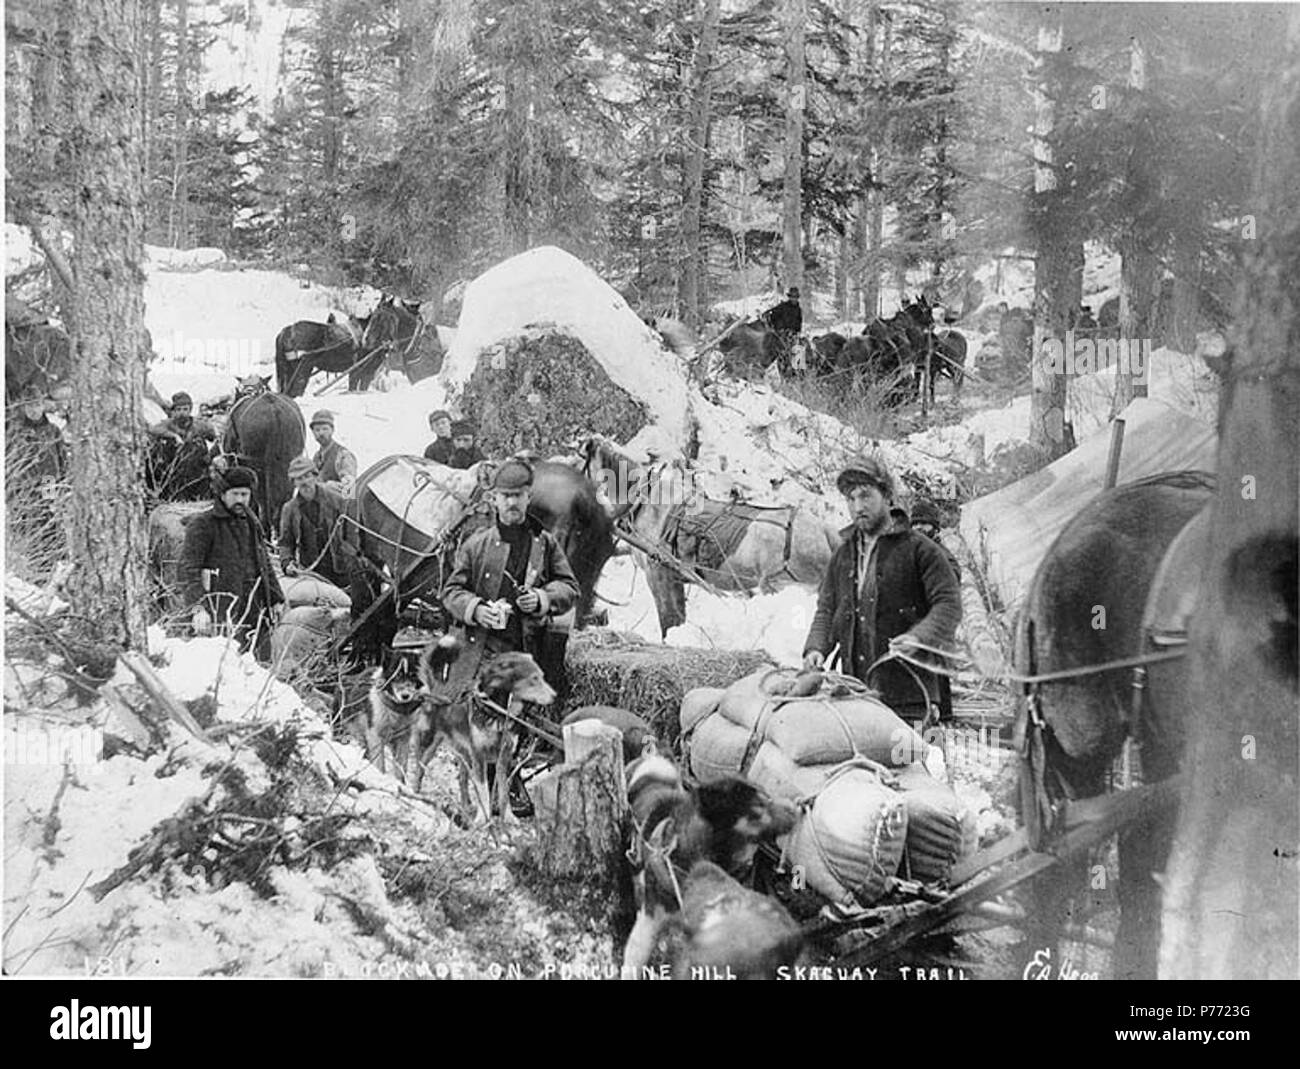 . English: Blockade of Klondikers on Porcupine Hill, White Pass Trail, Alaska, ca. 1898. English: Shows horse drawn sleds, pack dogs hauling freight and supplies on trail in forested area . Caption on image: 'Blockade on Porcupine Hill Skaguay Trail' Original image in Hegg Album 8, page 49 . Klondike Gold Rush. Subjects (LCTGM): Pack animals--Alaska; Horses--Alaska; Dogs--Alaska Subjects (LCSH): White Pass Trail; Trails--Alaska  . circa 1898 2 Blockade of Klondikers on Porcupine Hill, White Pass Trail, Alaska, ca 1898 (HEGG 705) - Stock Image